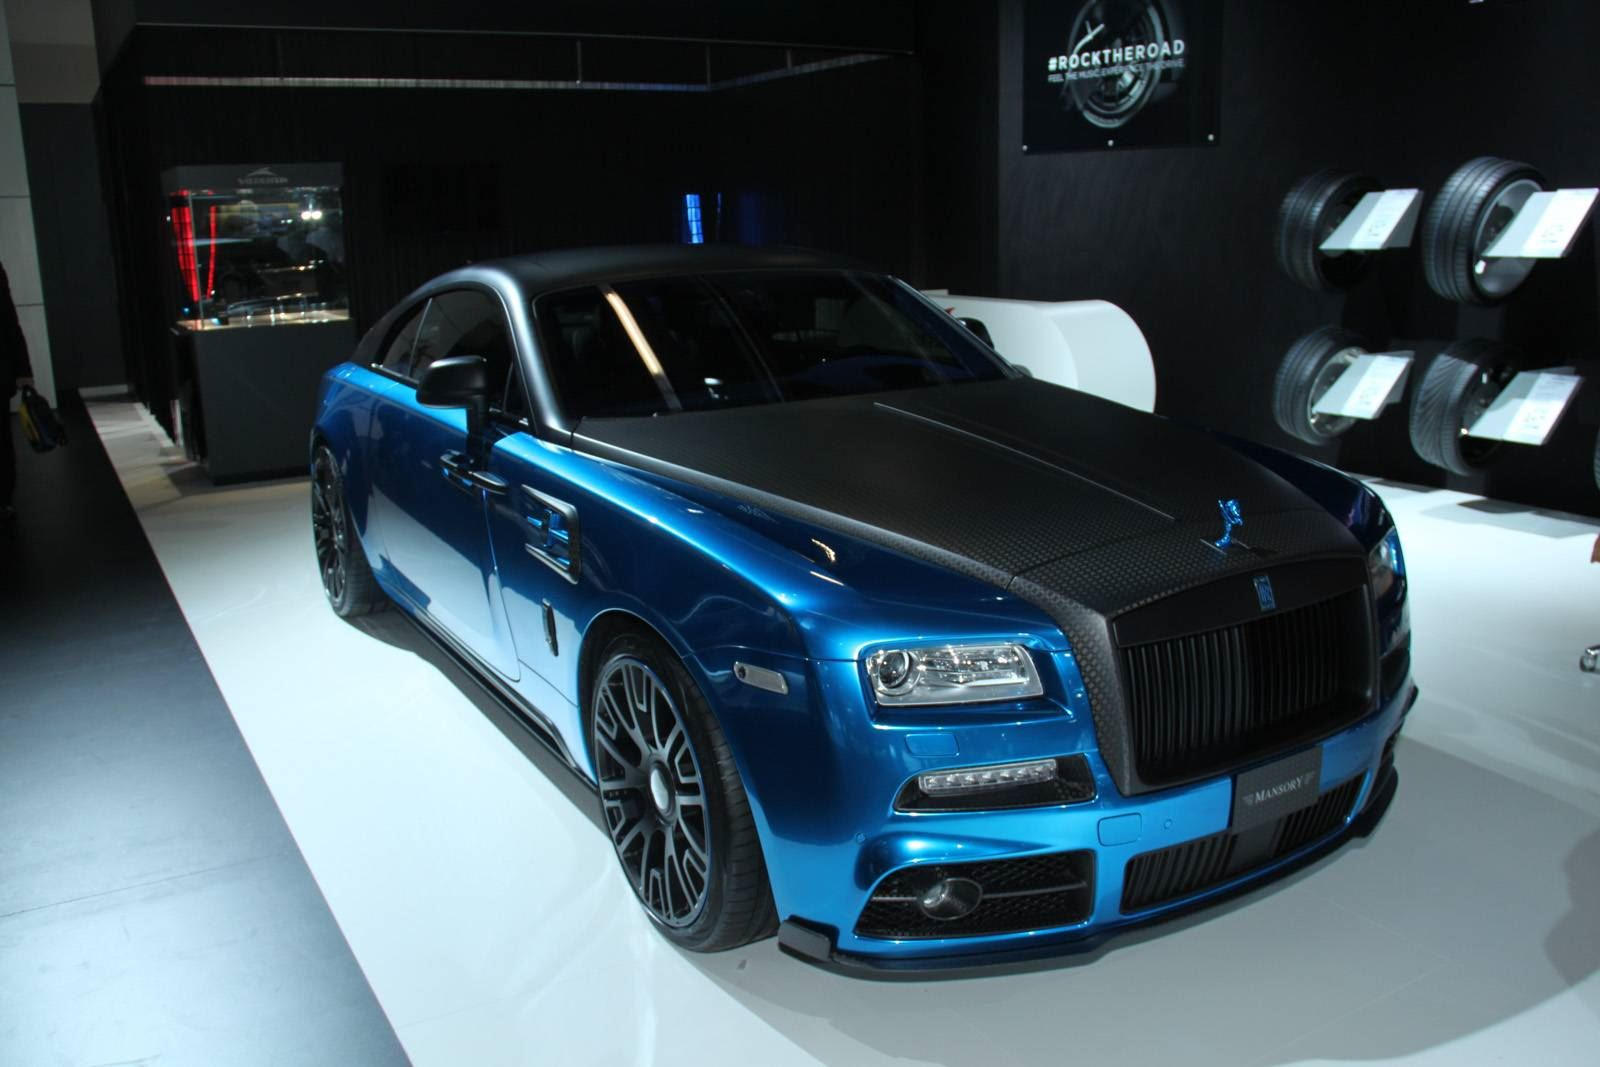 Mansory S Rolls Royce Wraith Is A Ridiculously Gorgeous Beast Carbuzz